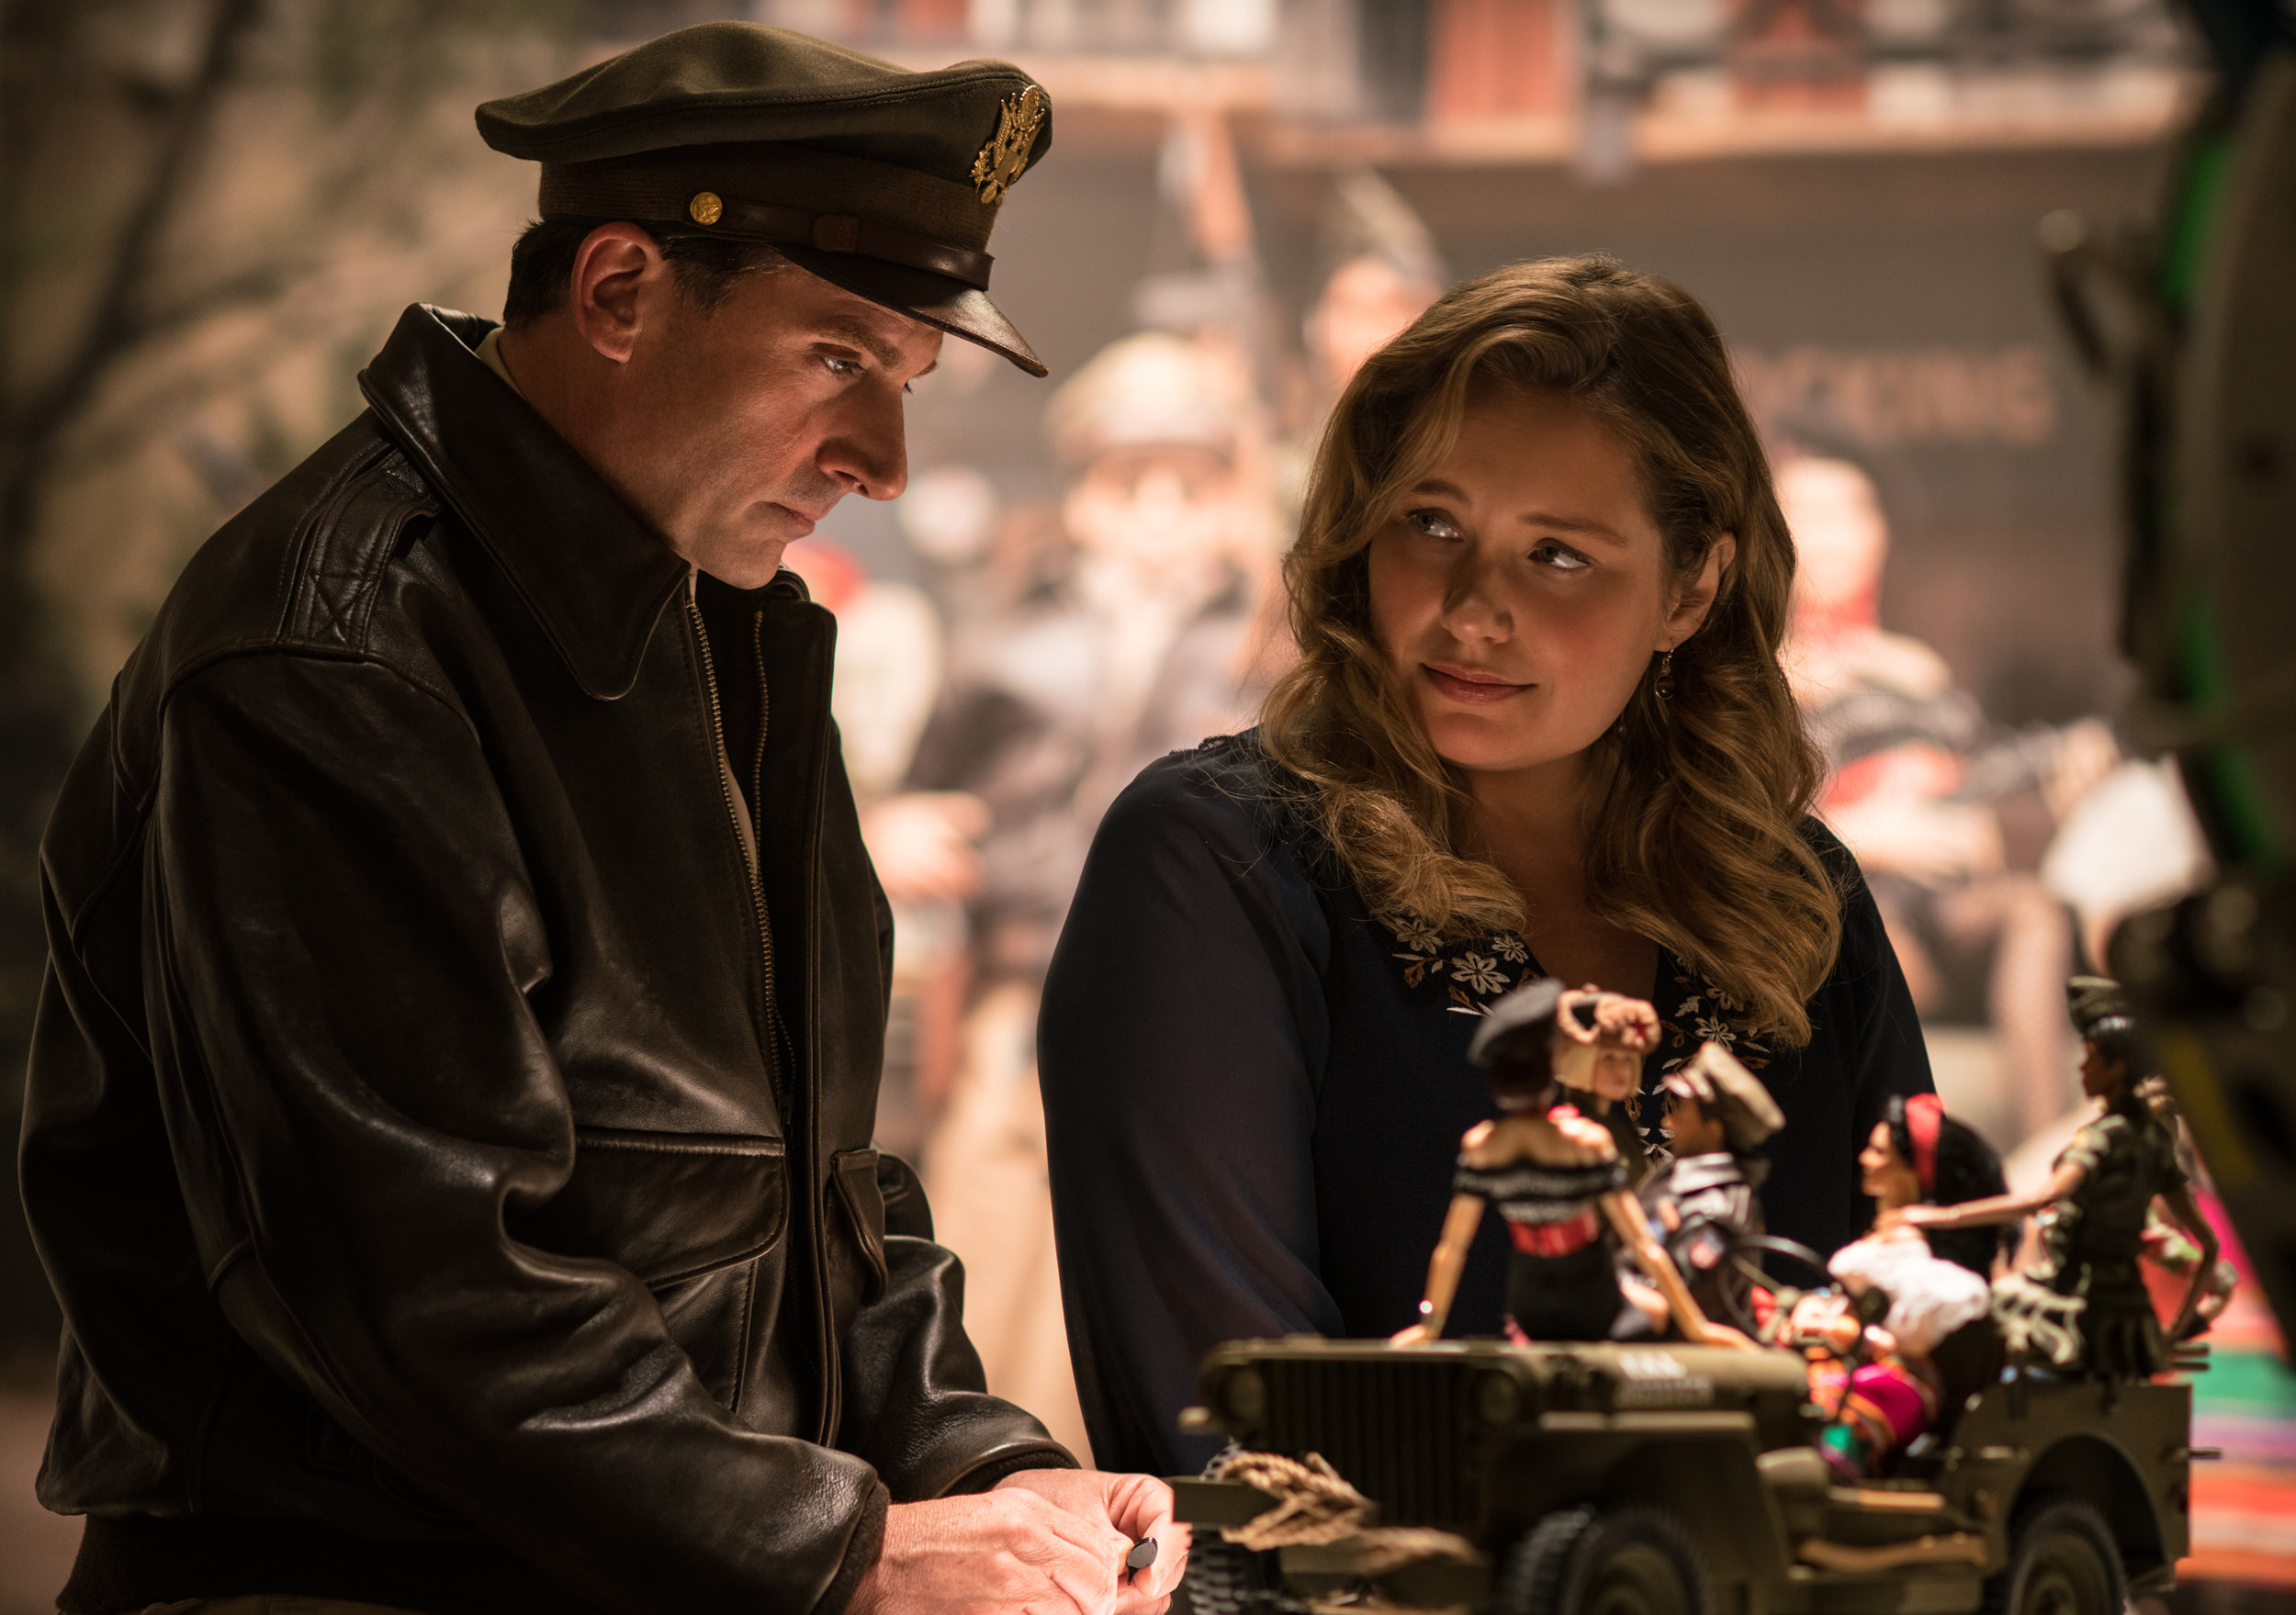 Steve Carell and Merritt Wever play dolls for a purpose in Welcome to Marwen